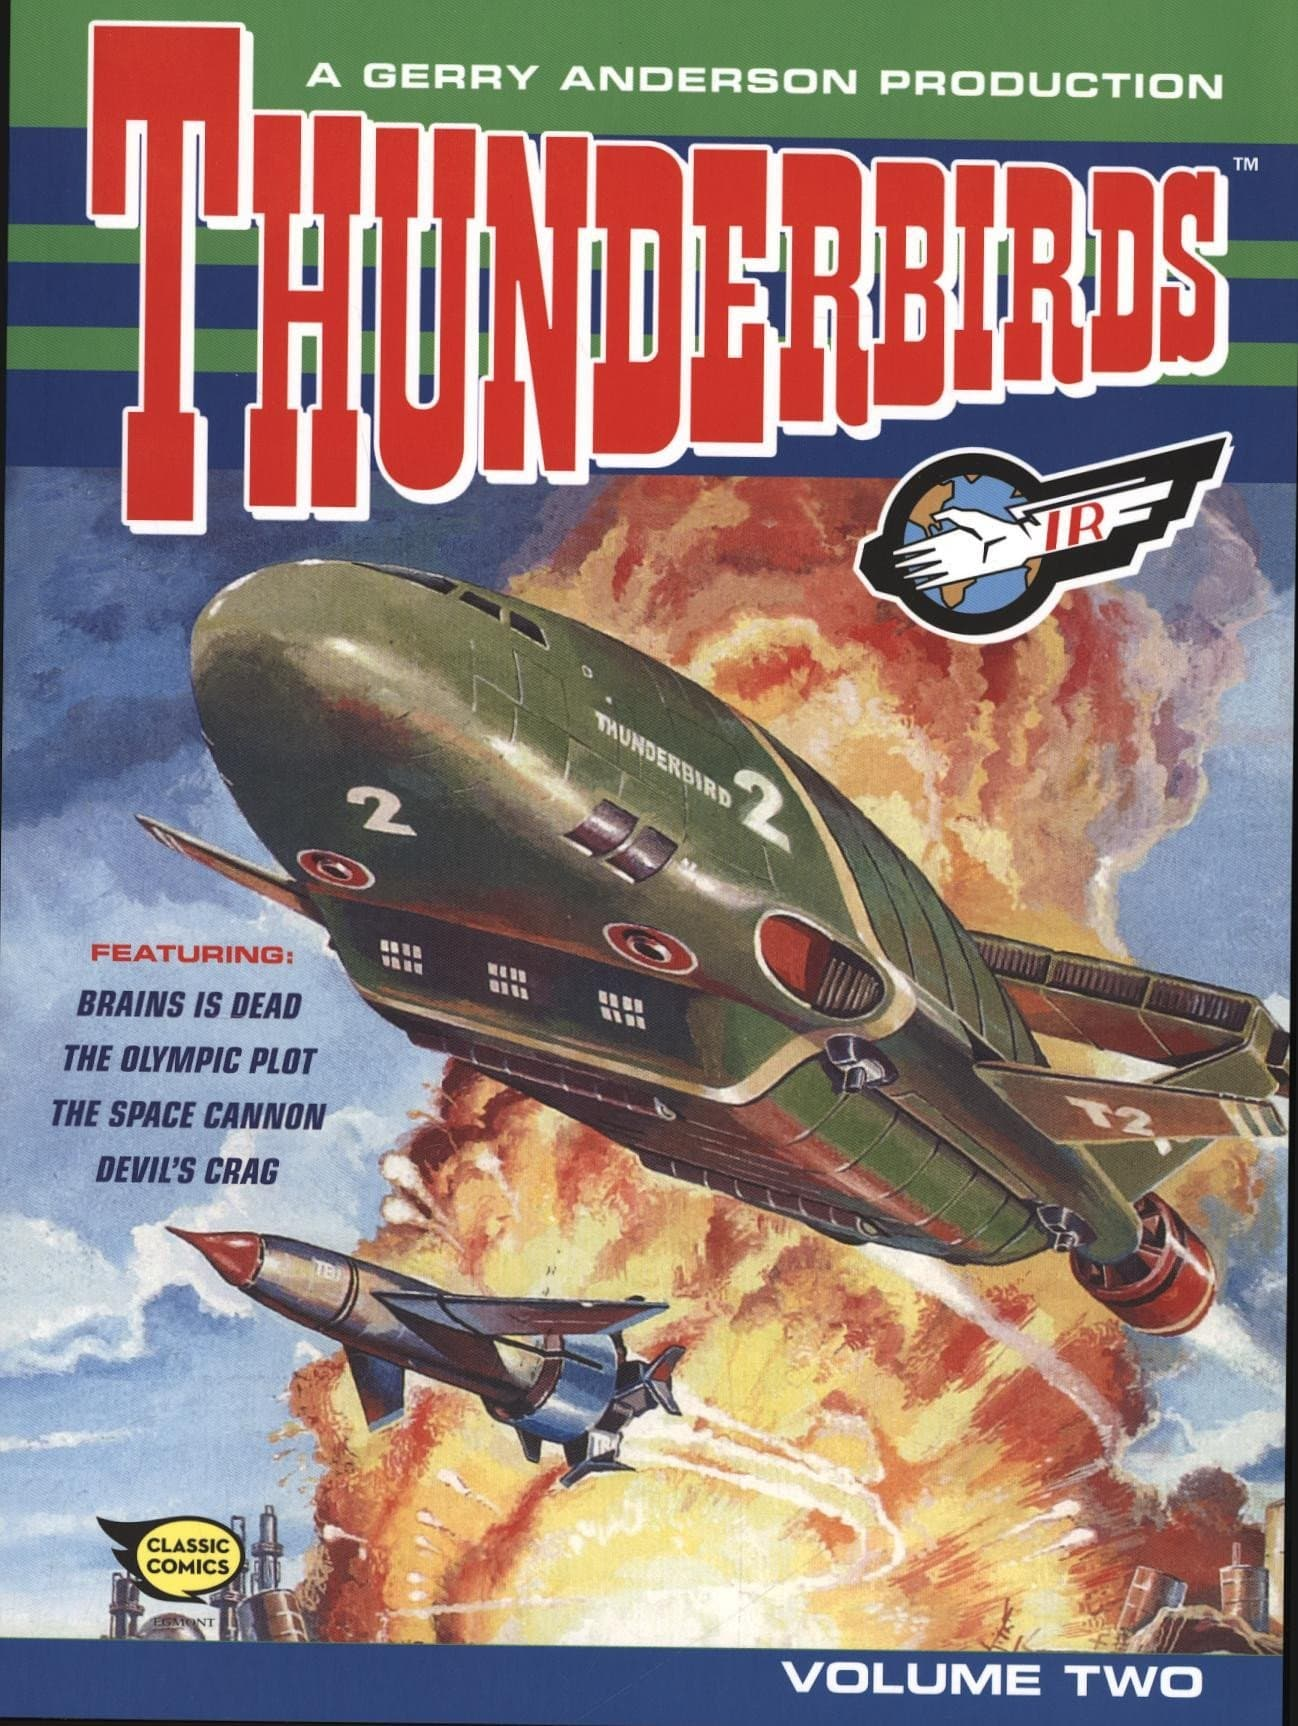 Thunderbirds Comic Collection Vol 2 - Gerry Anderson Official